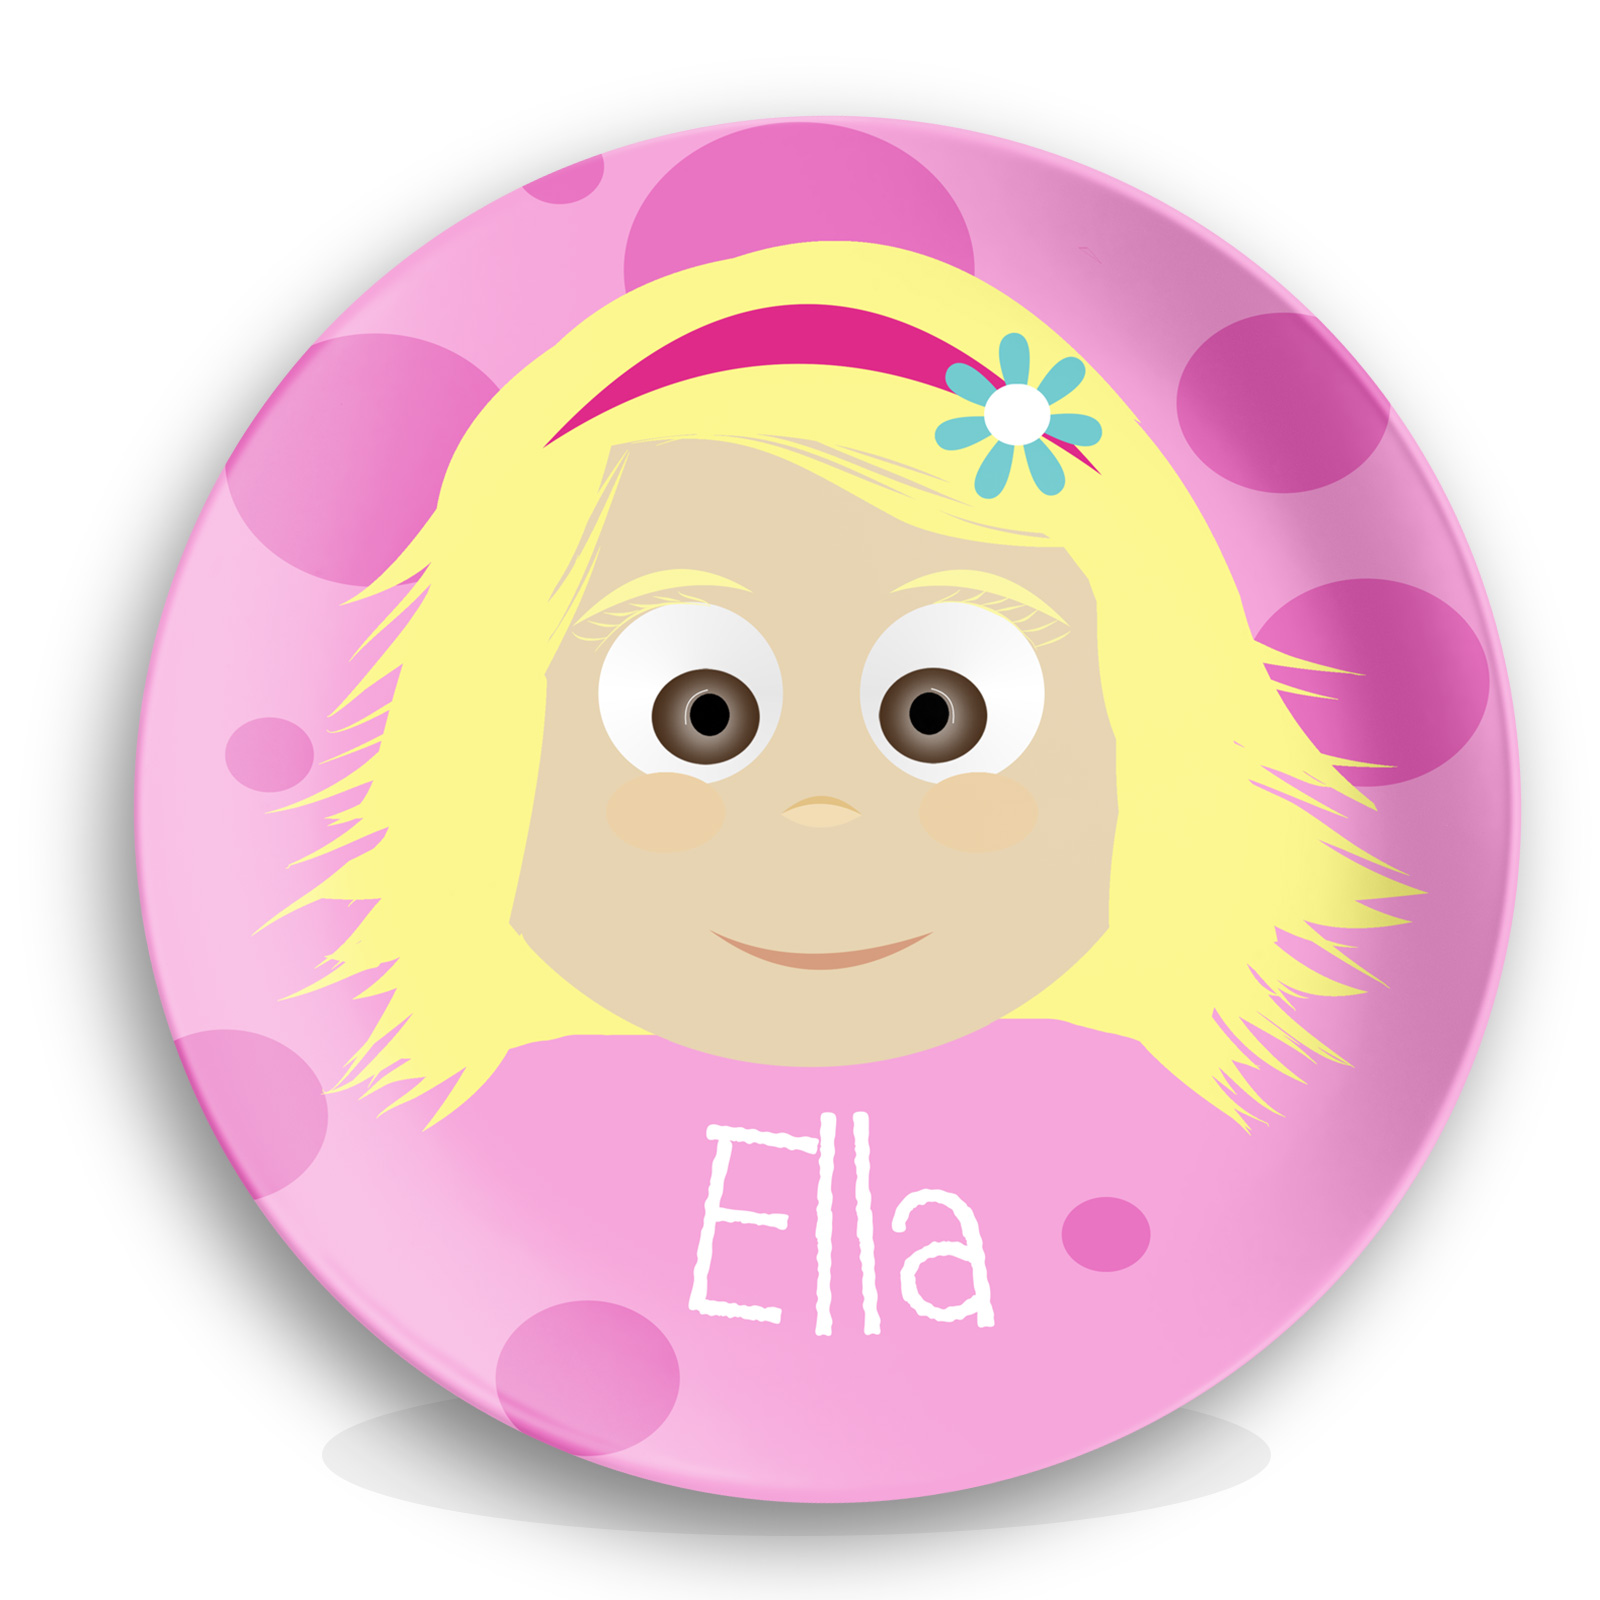 Personalized Kids Birthday Plates Custom Kids Plates u0026 Bowls Birthday Gift Custom Christmas Gift Childs Dinnerware Kidproof Dishes  sc 1 st  Lime Rikee Designs & Personalized Kids Birthday Plates Custom Kids Plates u0026 Bowls ...